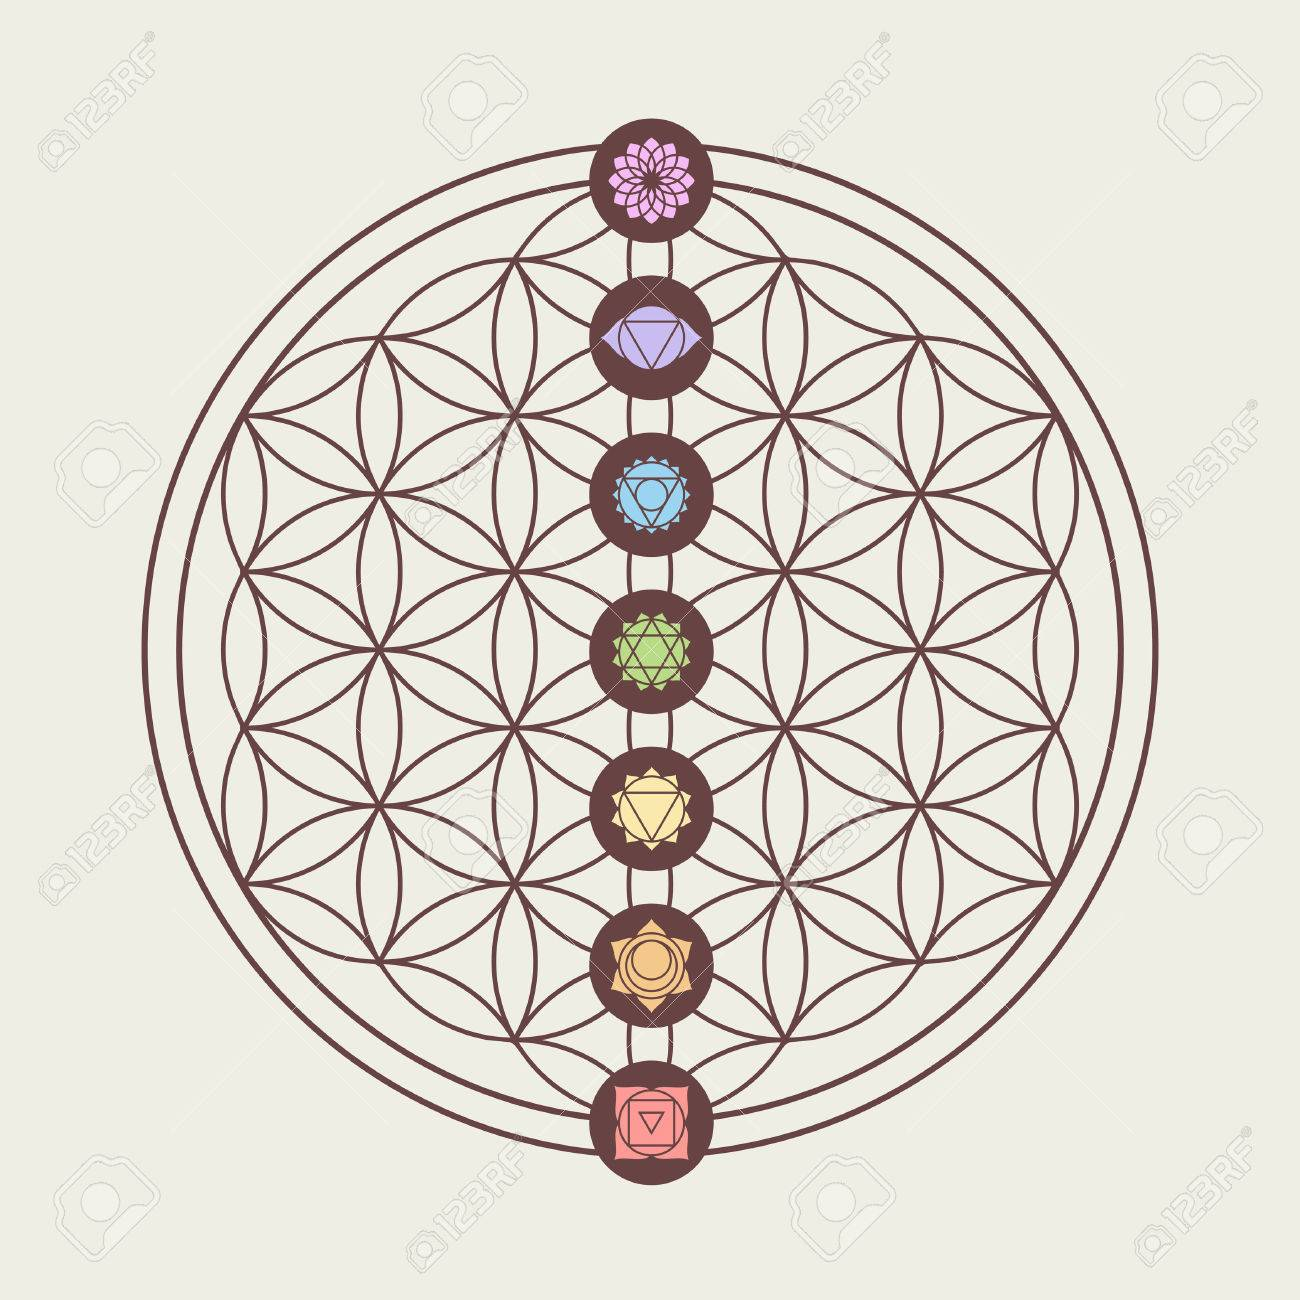 Zen concept illustration, seven main chakra icons placed on flower of life sacred geometry design. - 52162431